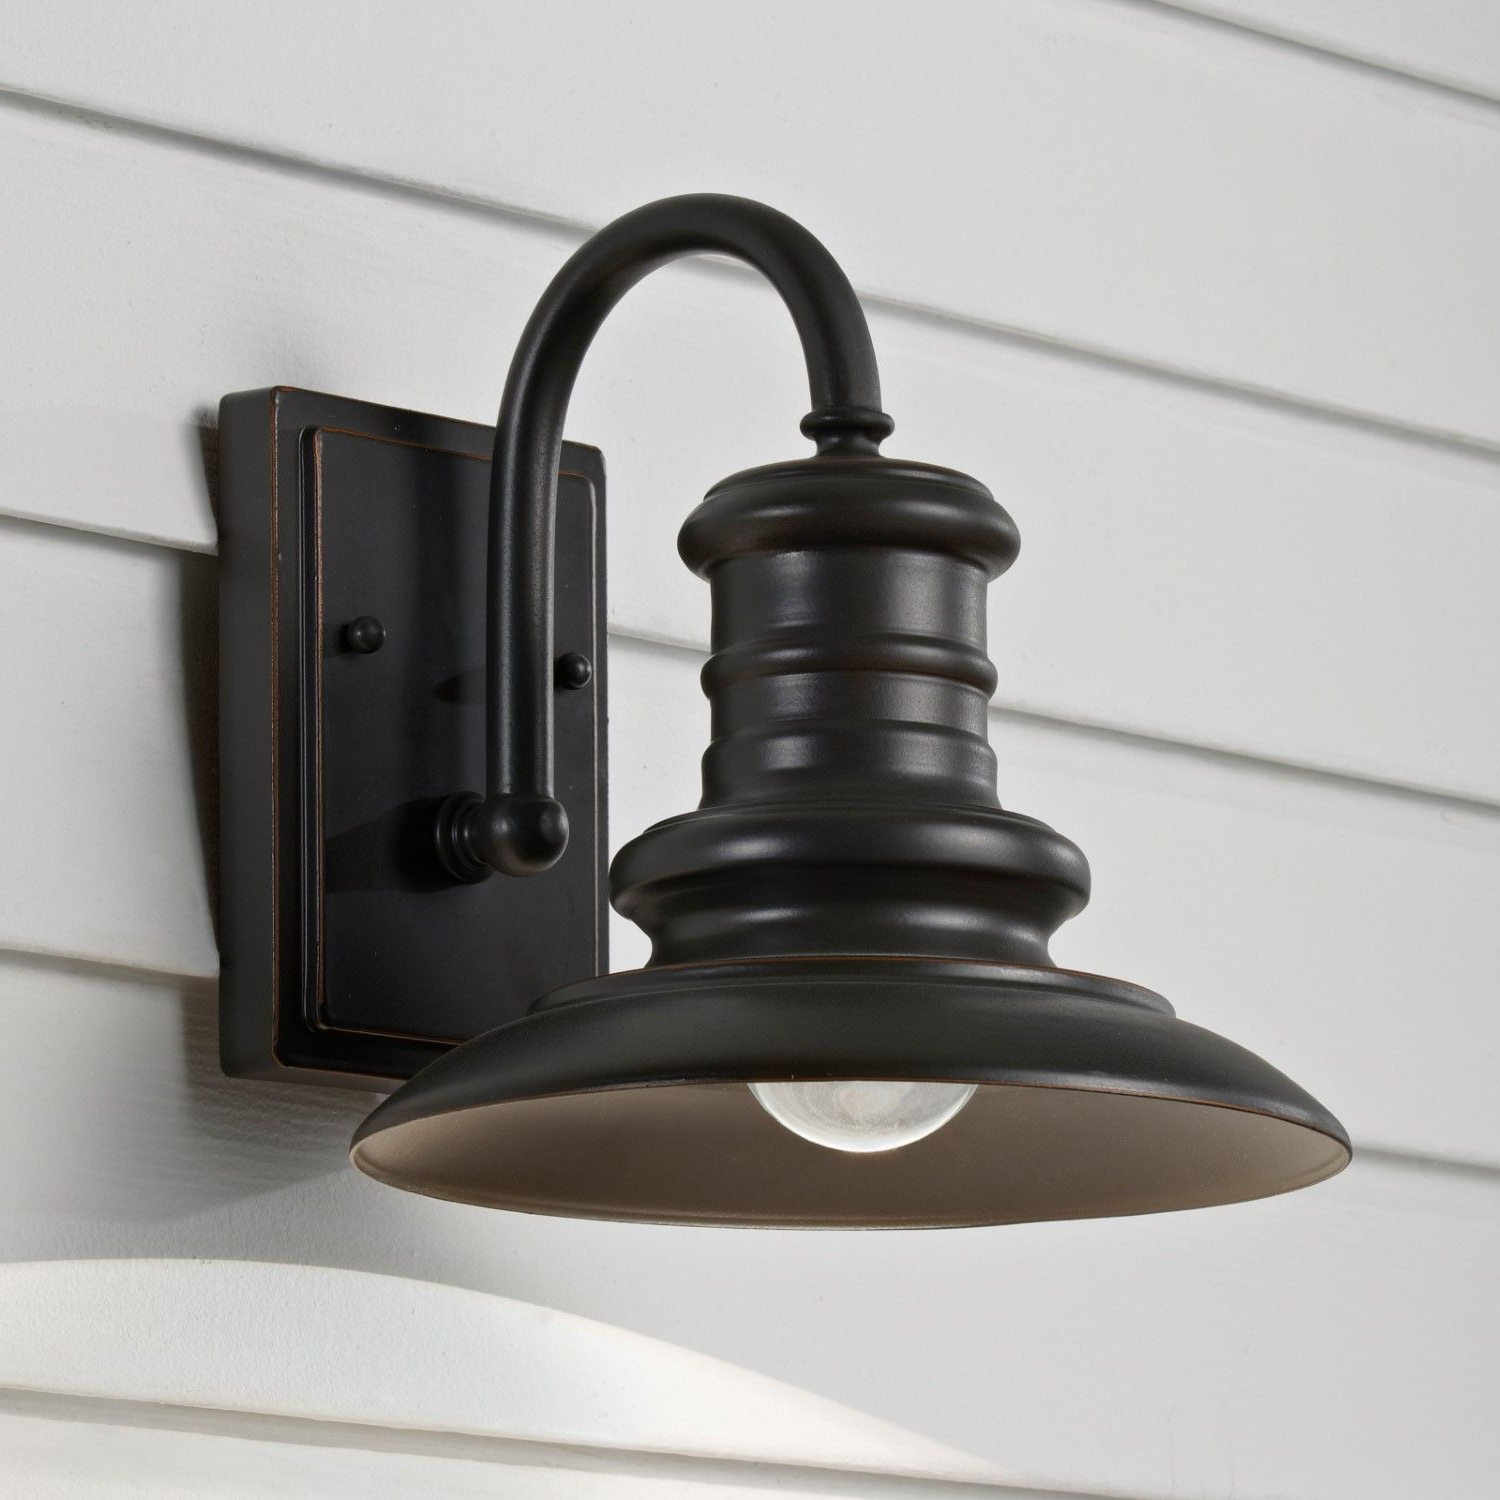 Led Outdoor Wall Lights, Outdoor Barn Lighting (View 9 of 20)